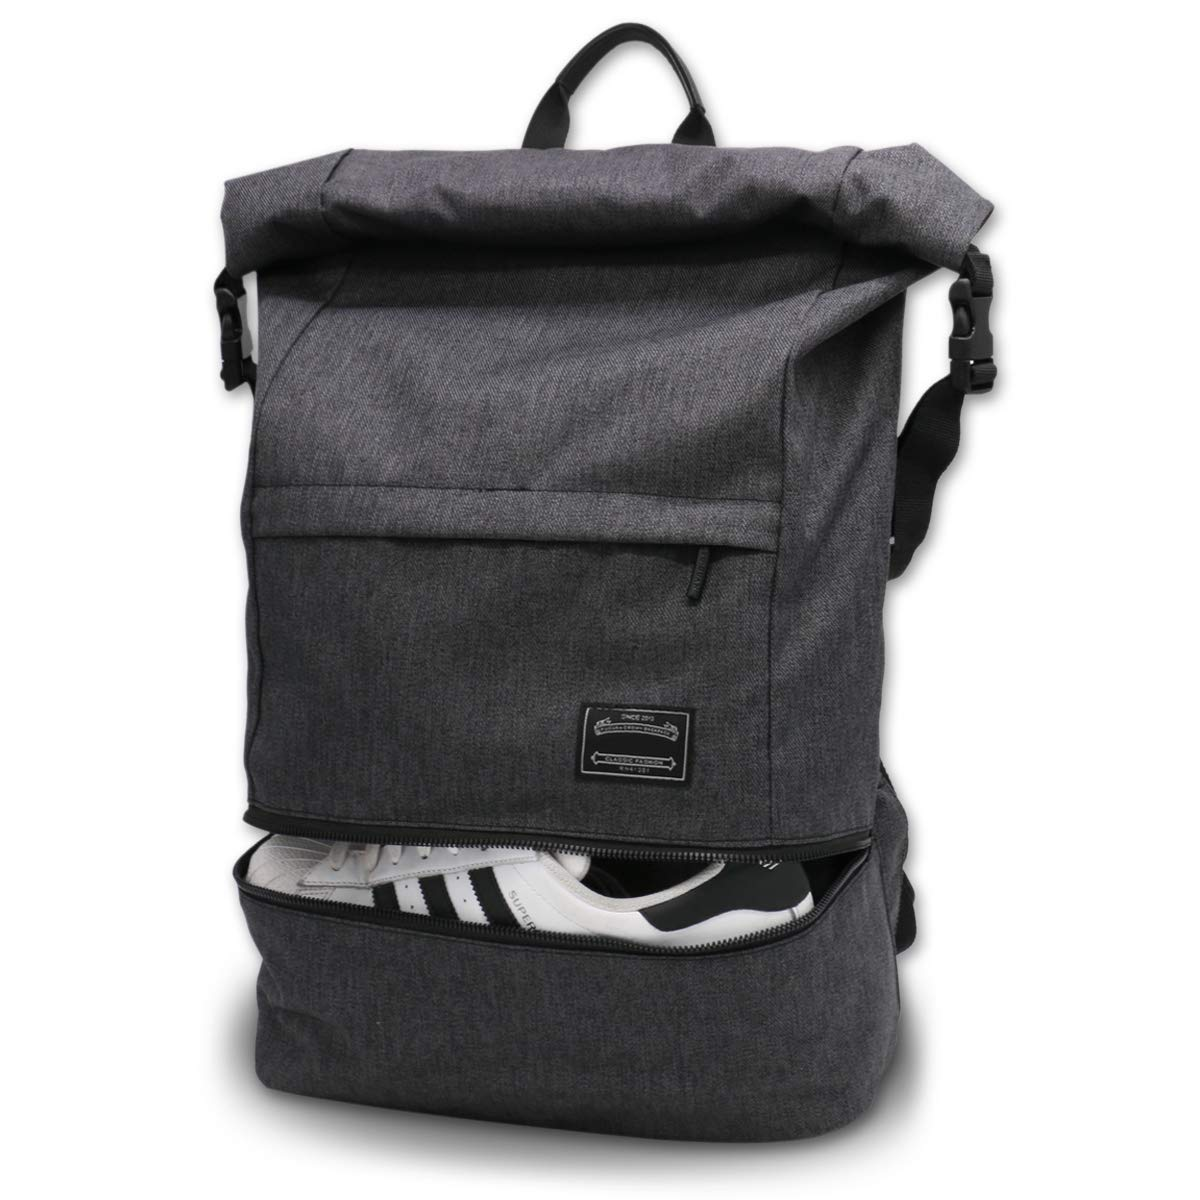 Itshiny Anti-Theft Roll-top Laptop Bag